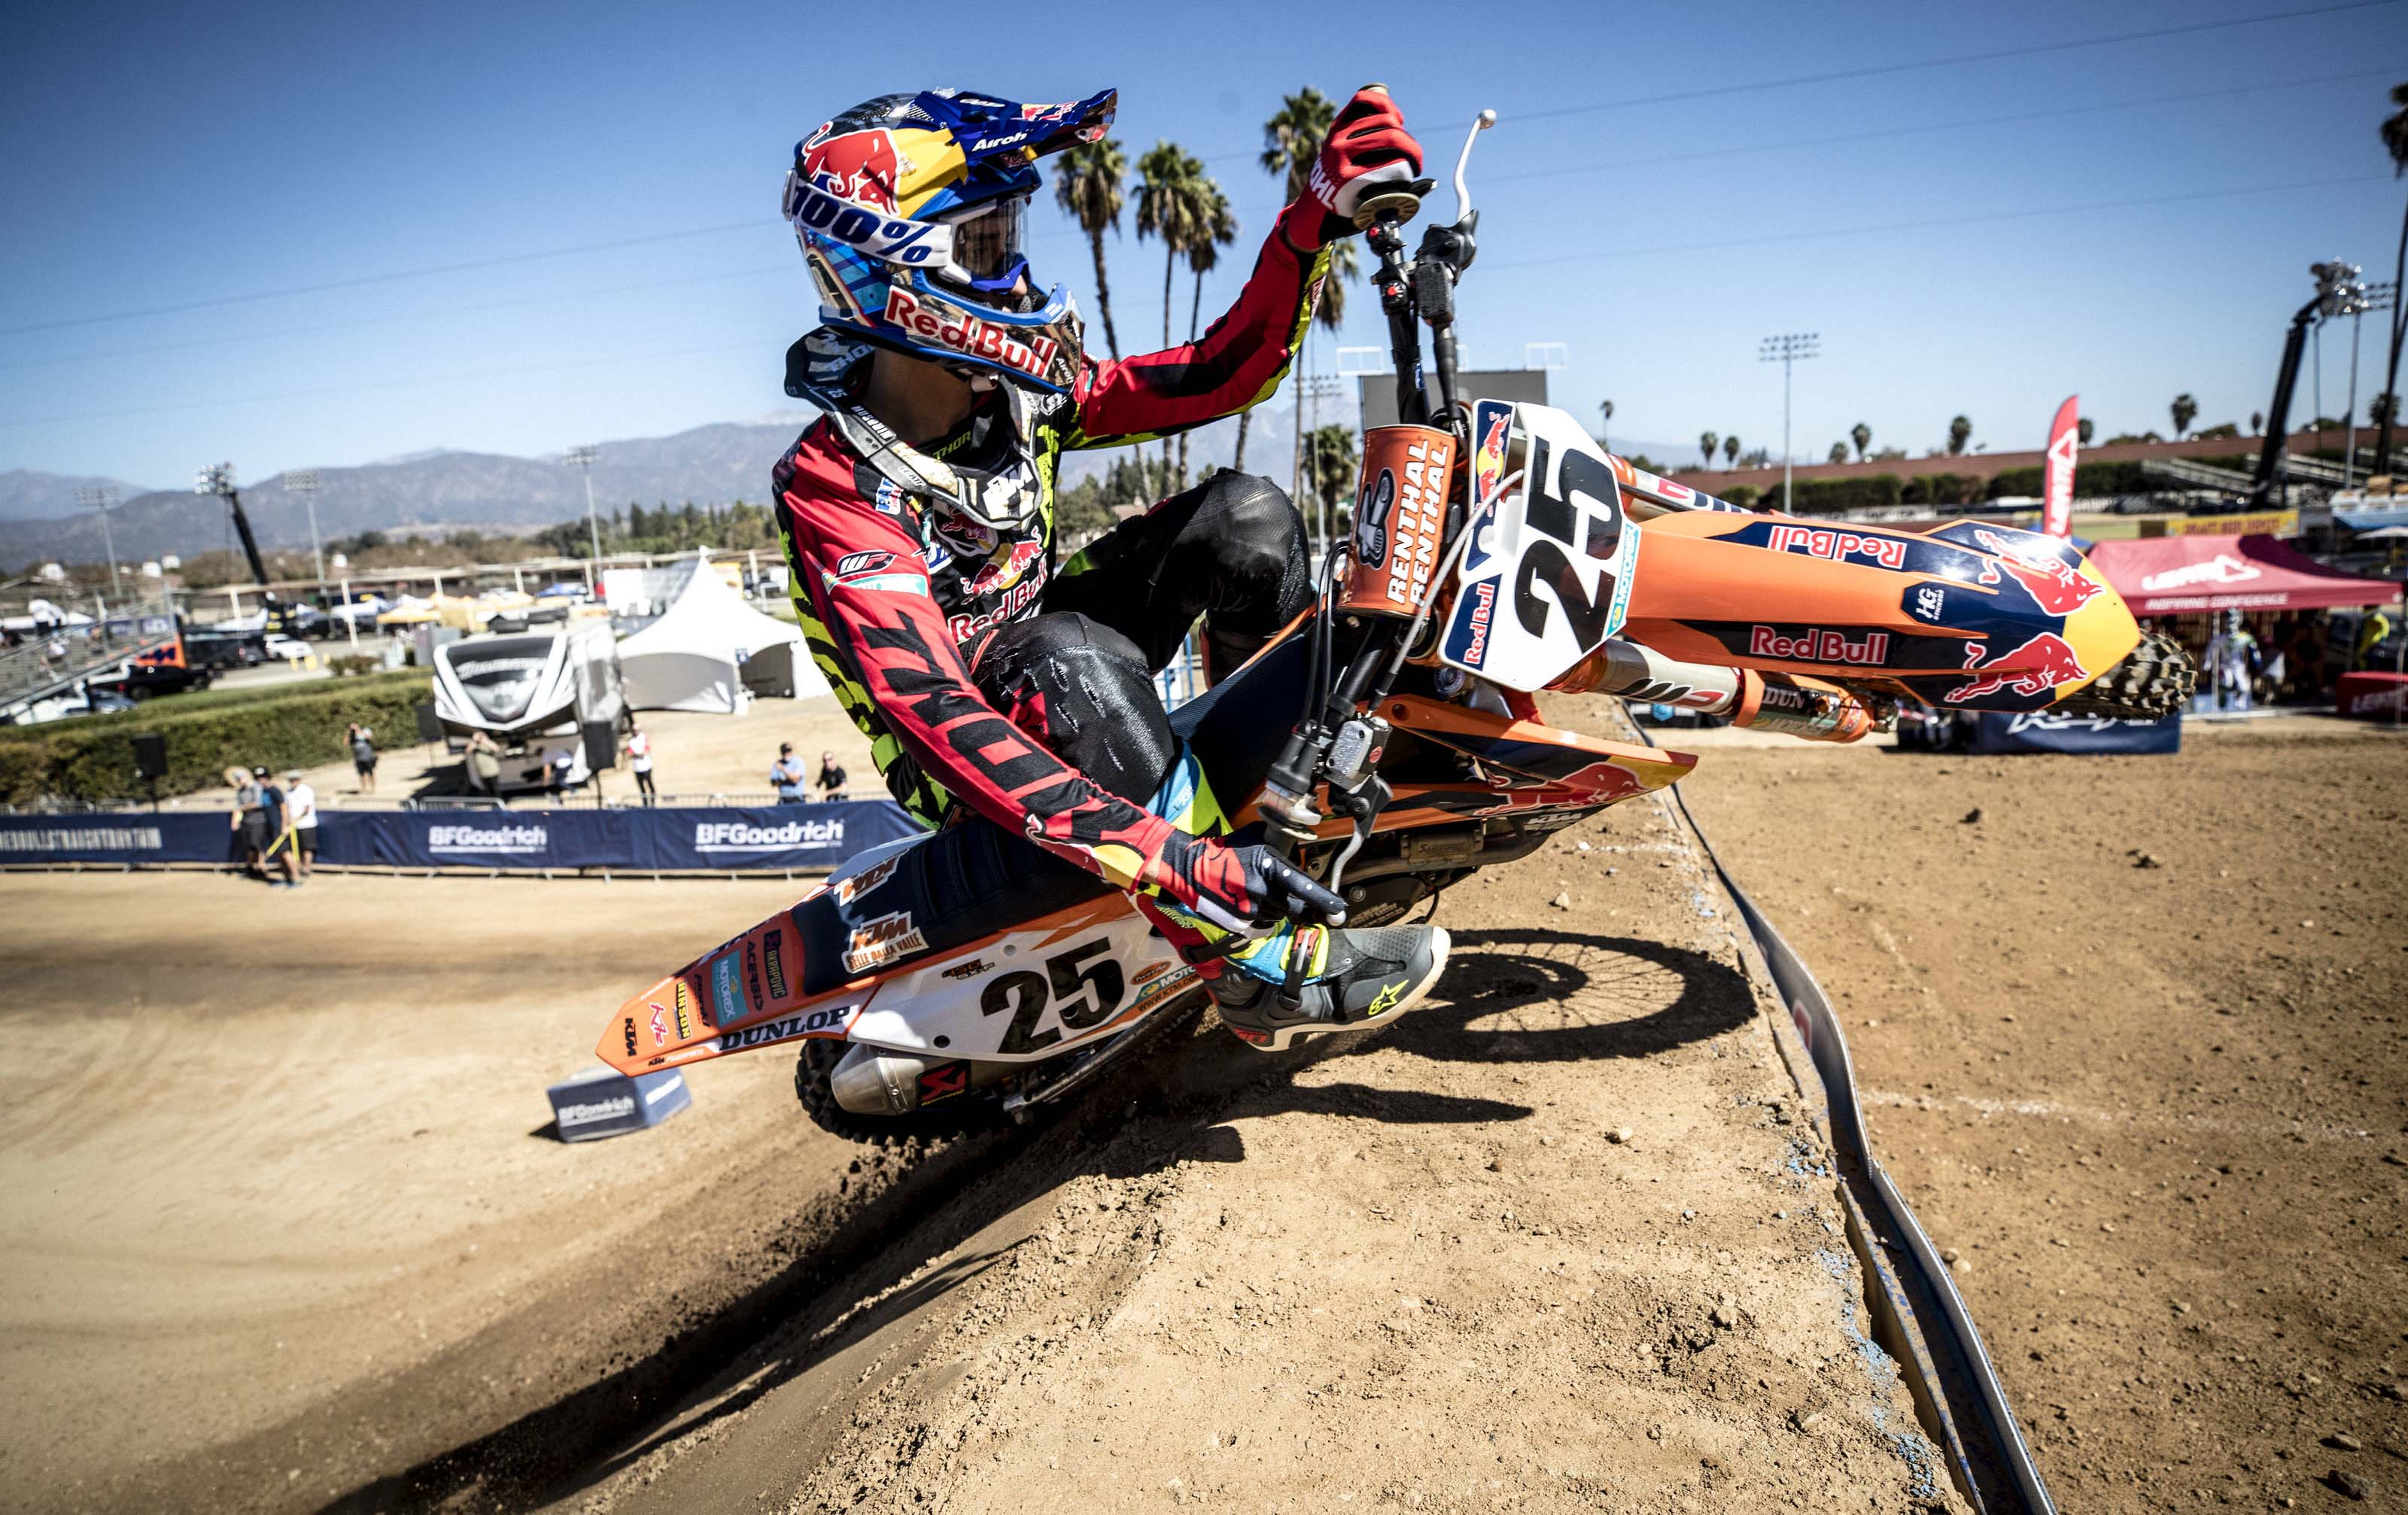 Marvin Musquin races during Red Bull Straight Rhythm in Pomona, CA, USA on October 21, 2017. // Christian Pondella/Red Bull Content Pool // P-20171022-00756 // Usage for editorial use only // Please go to www.redbullcontentpool.com for further information. //